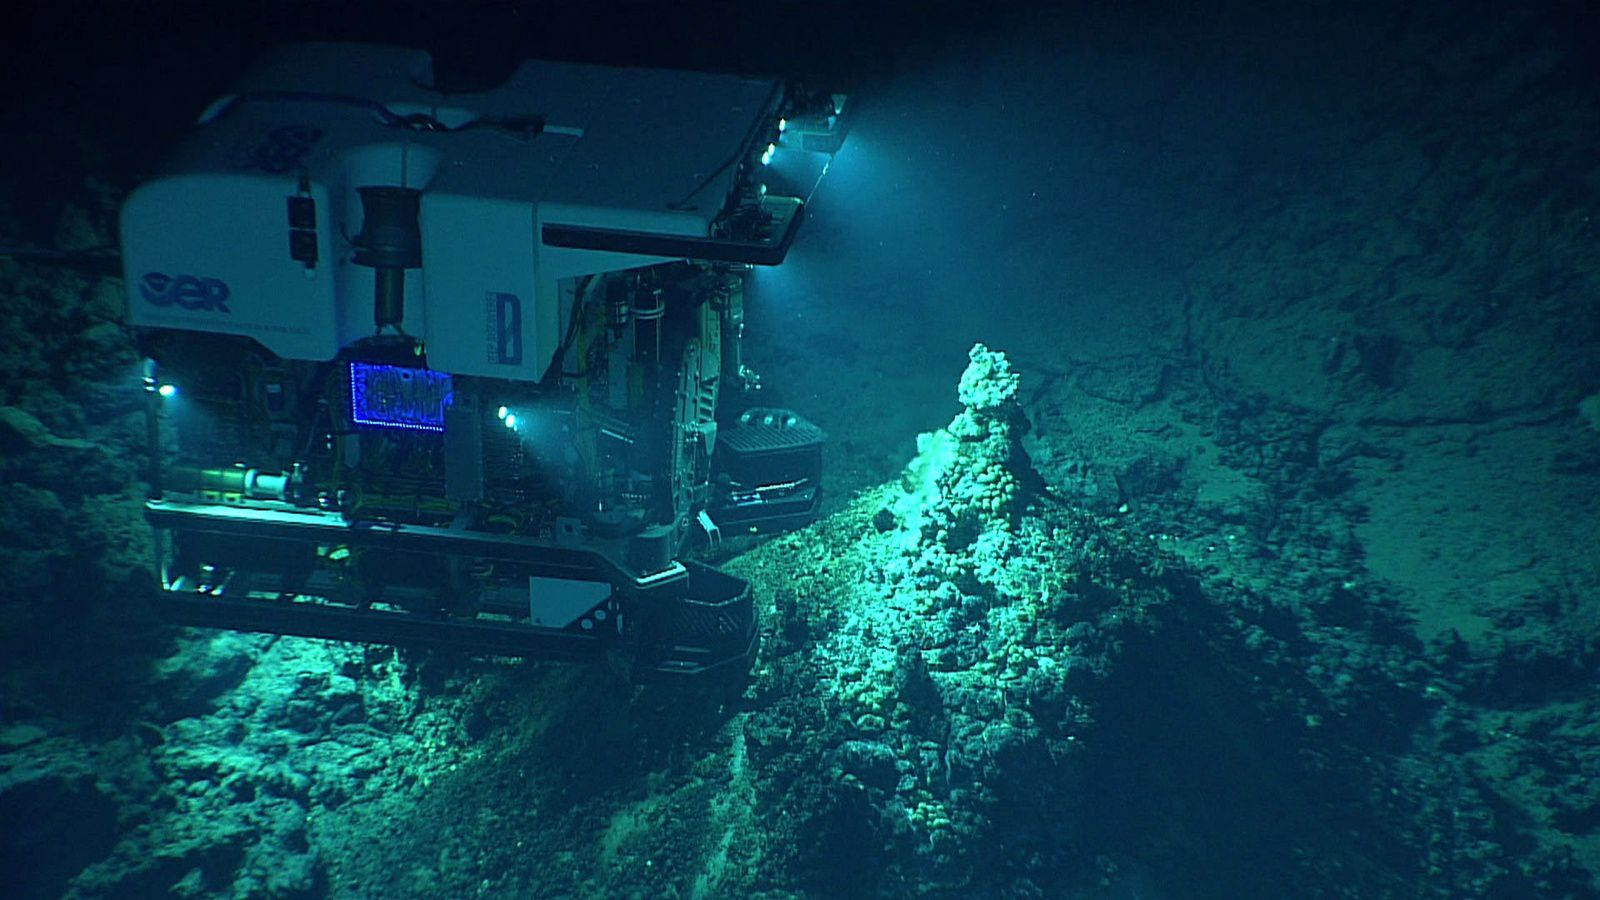 ROV Deep Discover on the vents of Chamorro seamount - 2016.06.24 - courtesy of the NOAA Office of Ocean Exploration and Research, 2016 Deepwater Exploration of the Marianas.